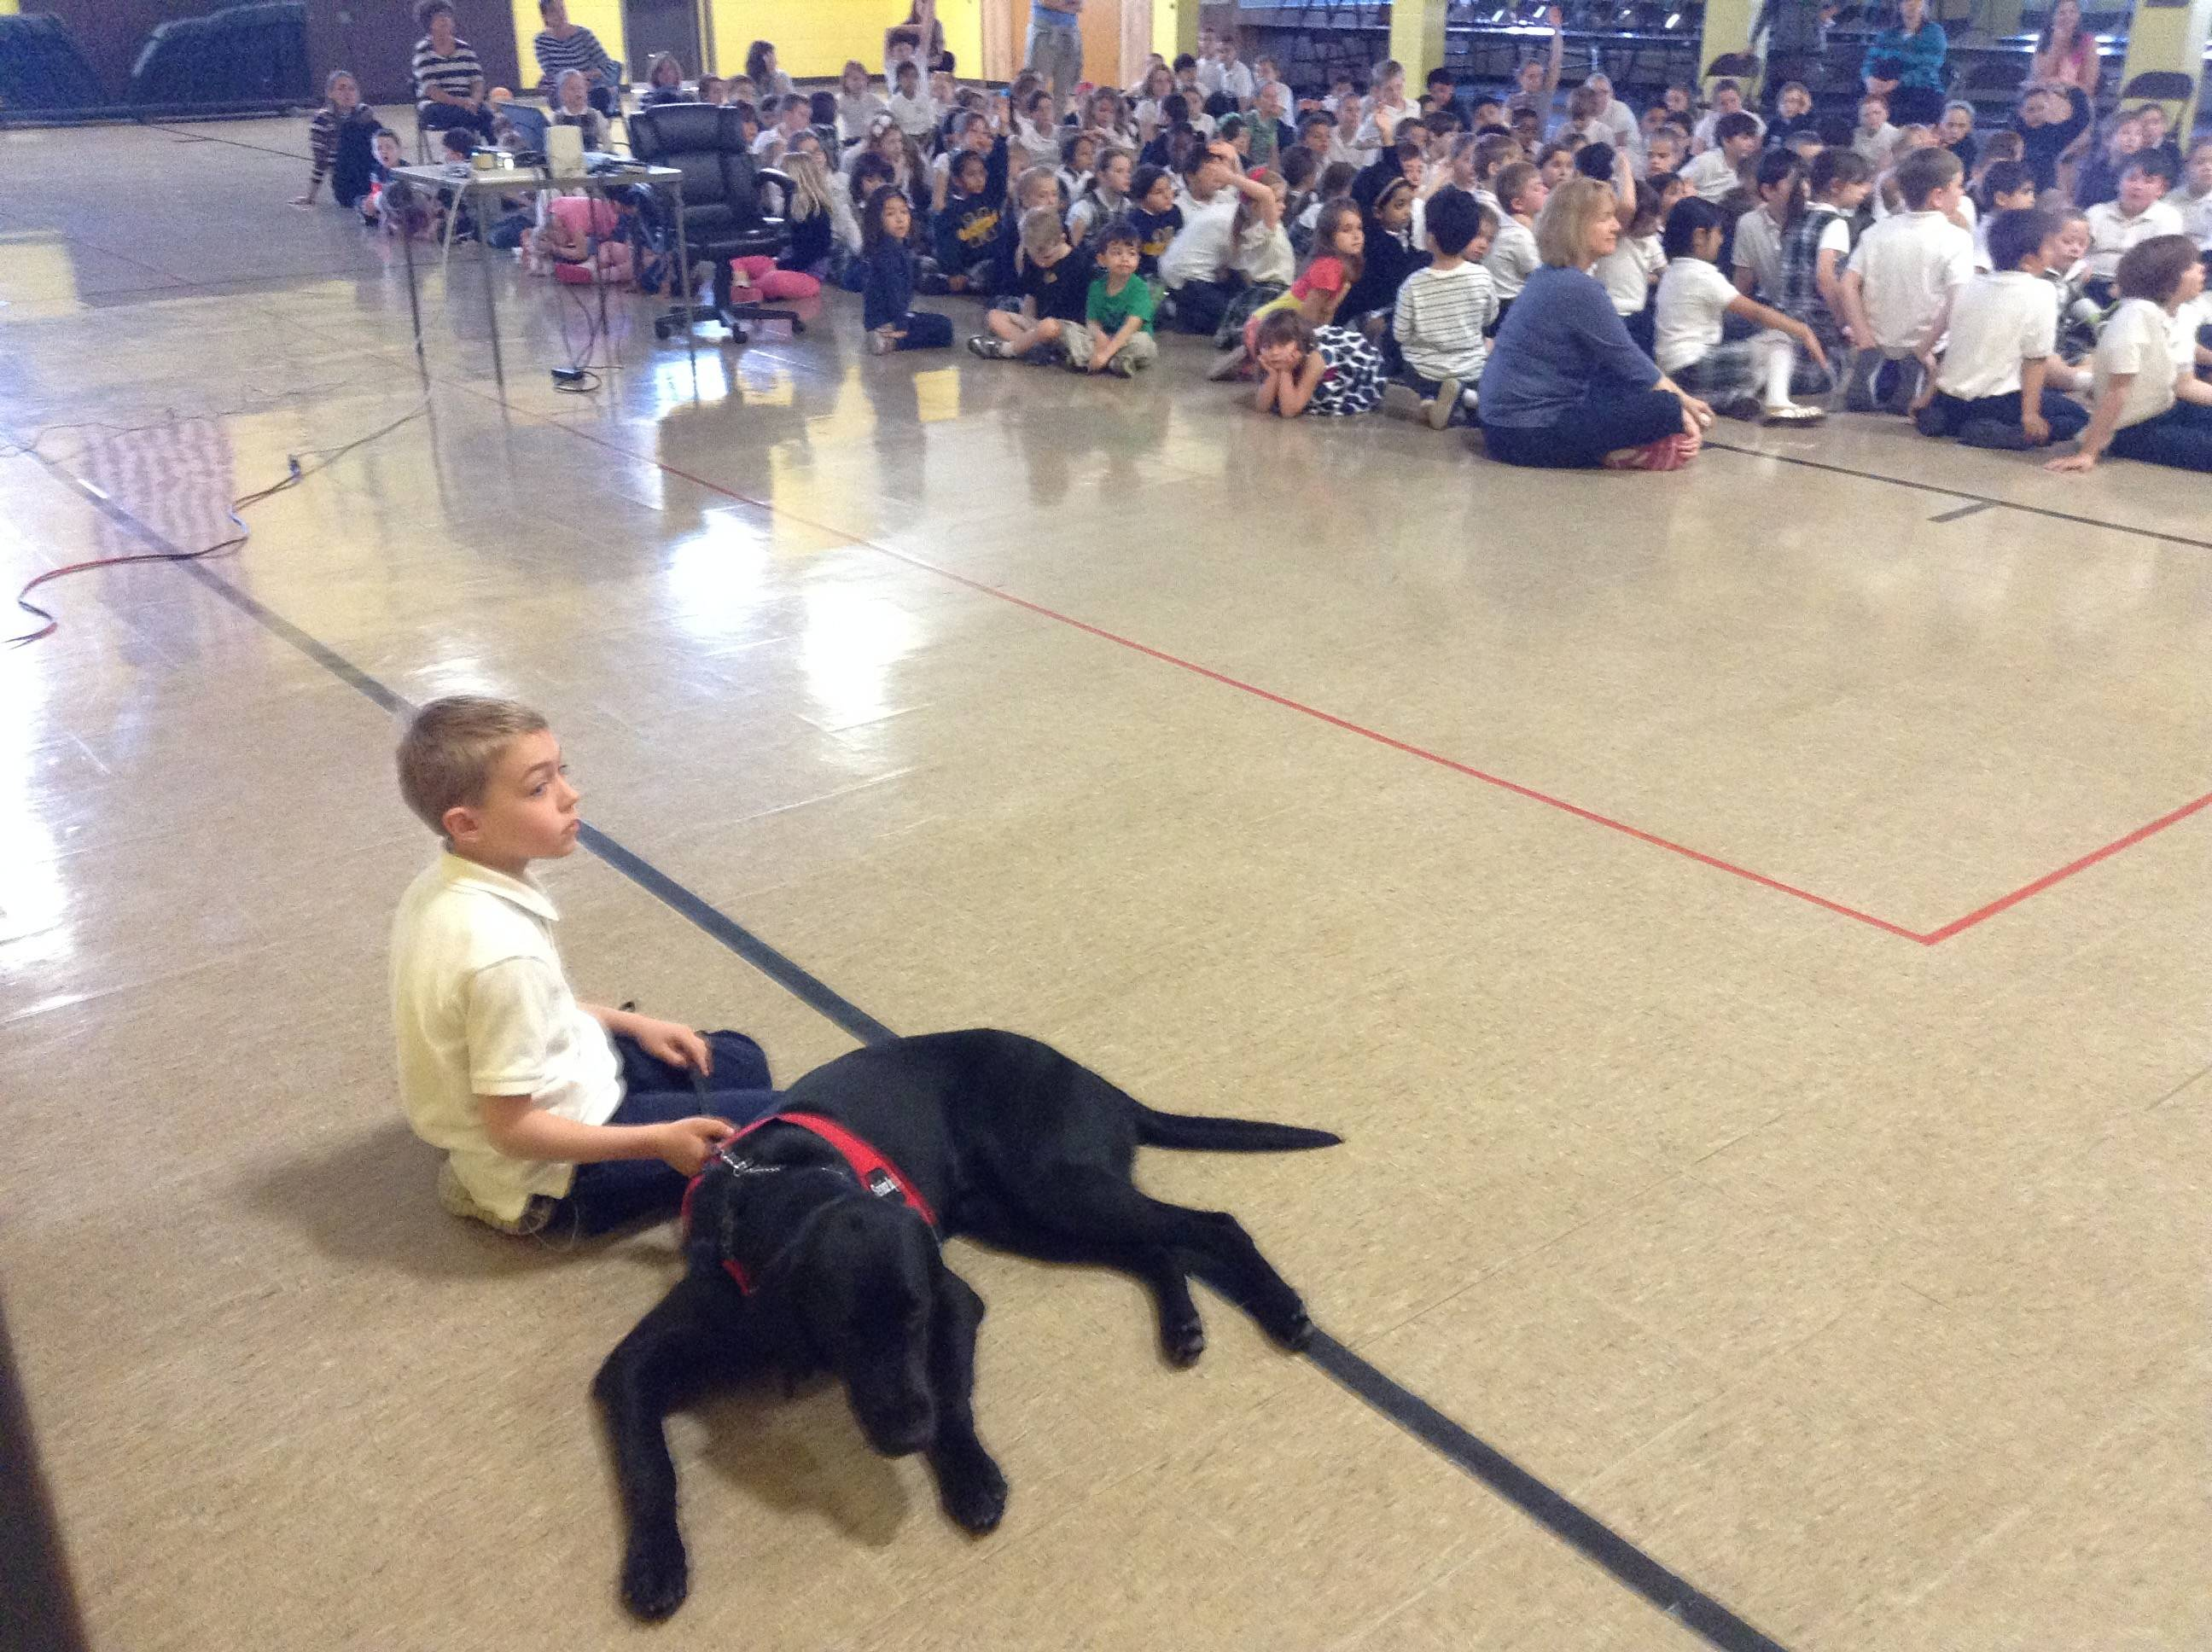 Mundelein-area school welcomes diabetes-alert dog to watch student